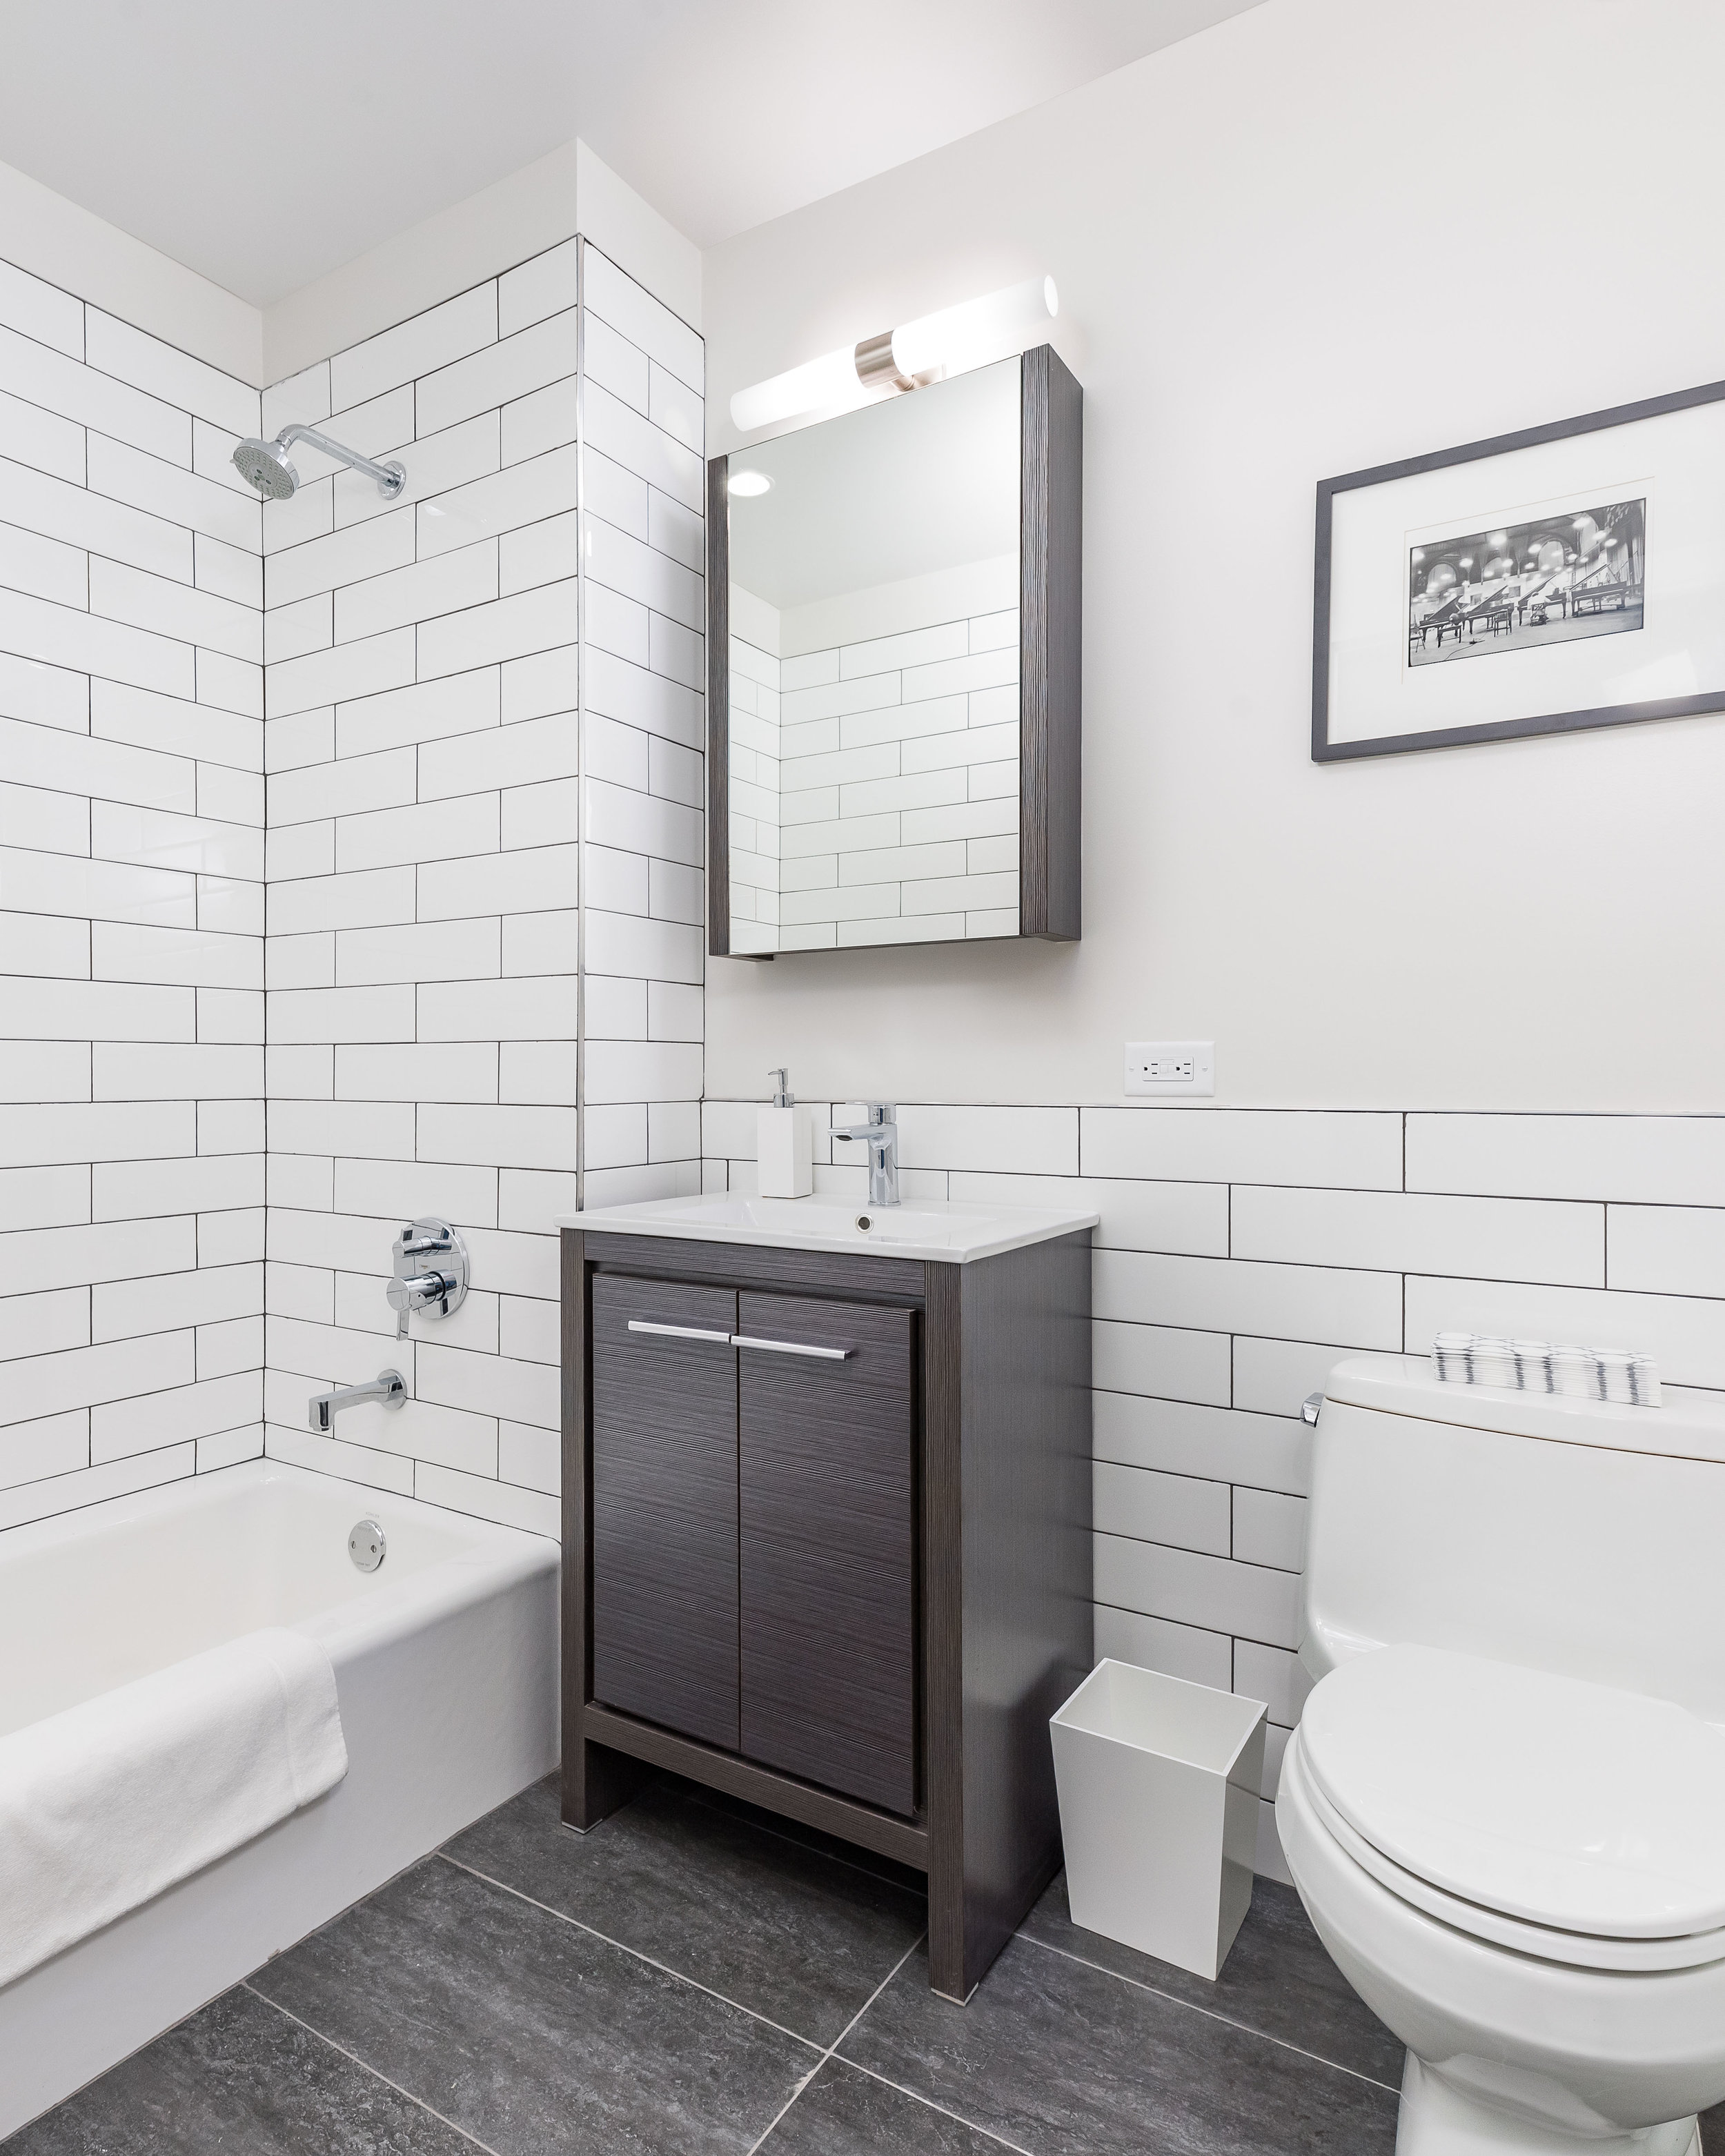 - Pamper yourself in the chic bathrooms, which feature best-in-class Hansgrohe fixtures, subway tiling and charcoal gray stone porcelain flooring.